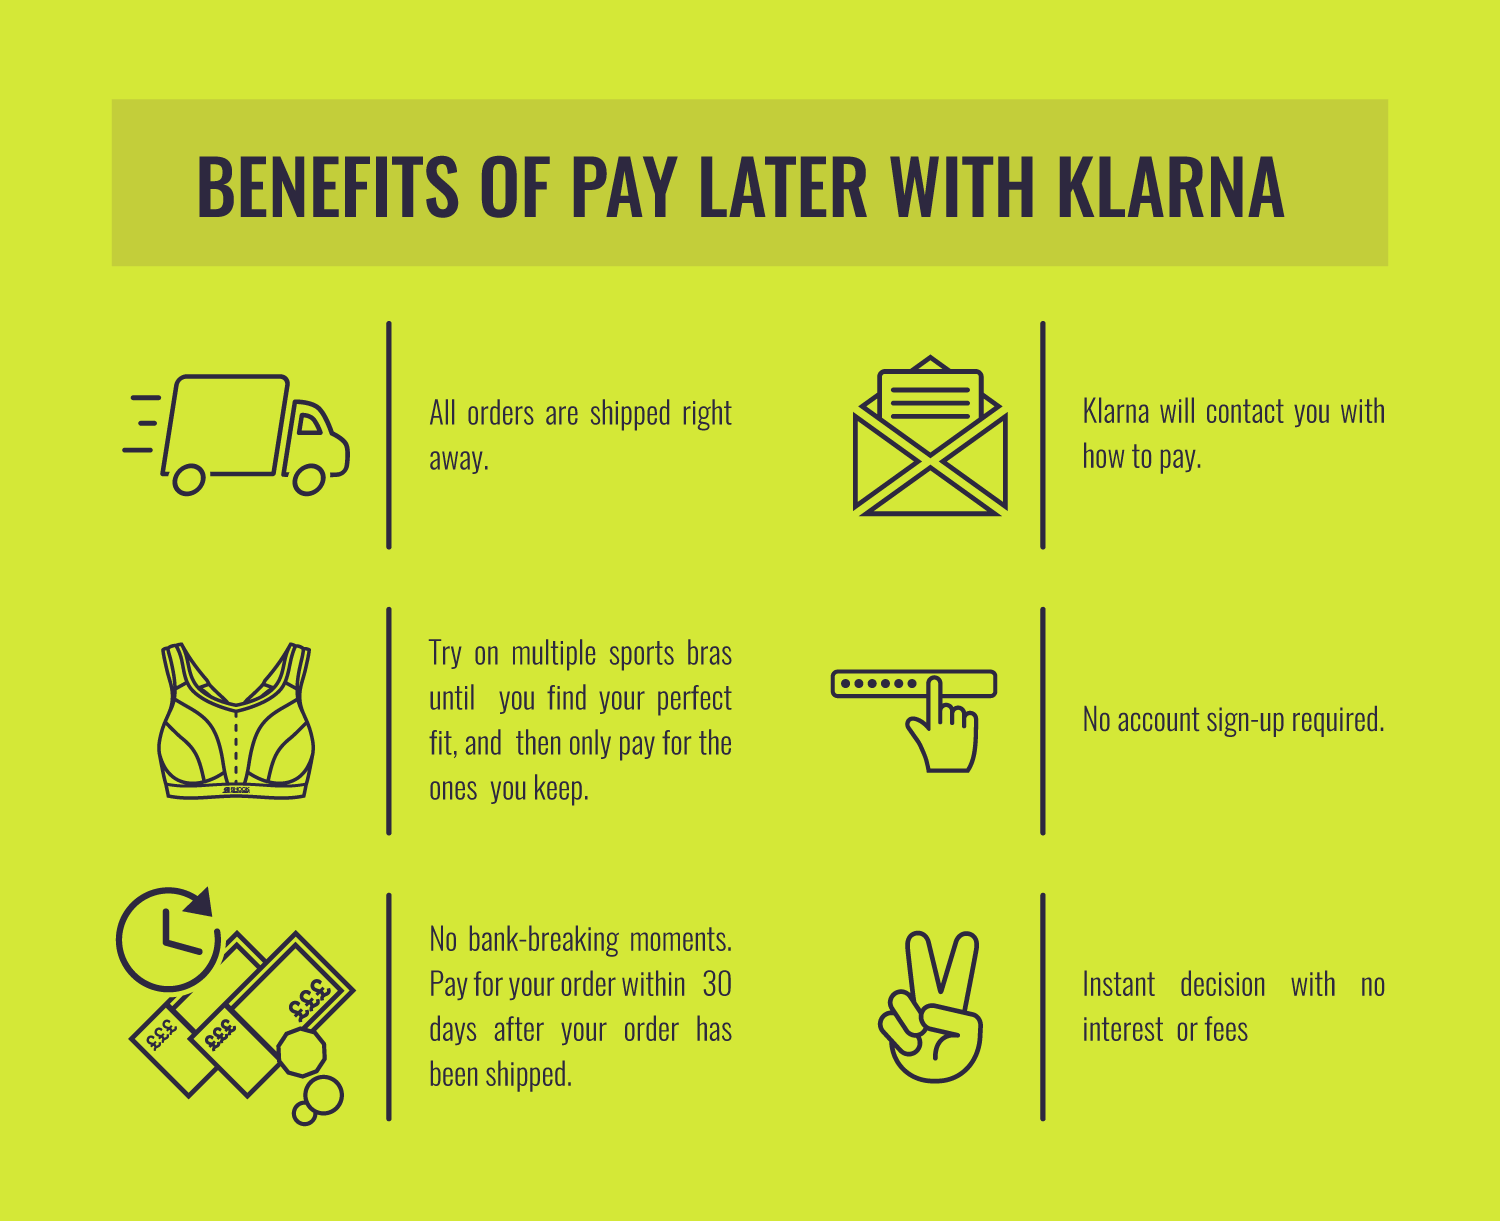 The Benefits Of Pay Later With Klarna